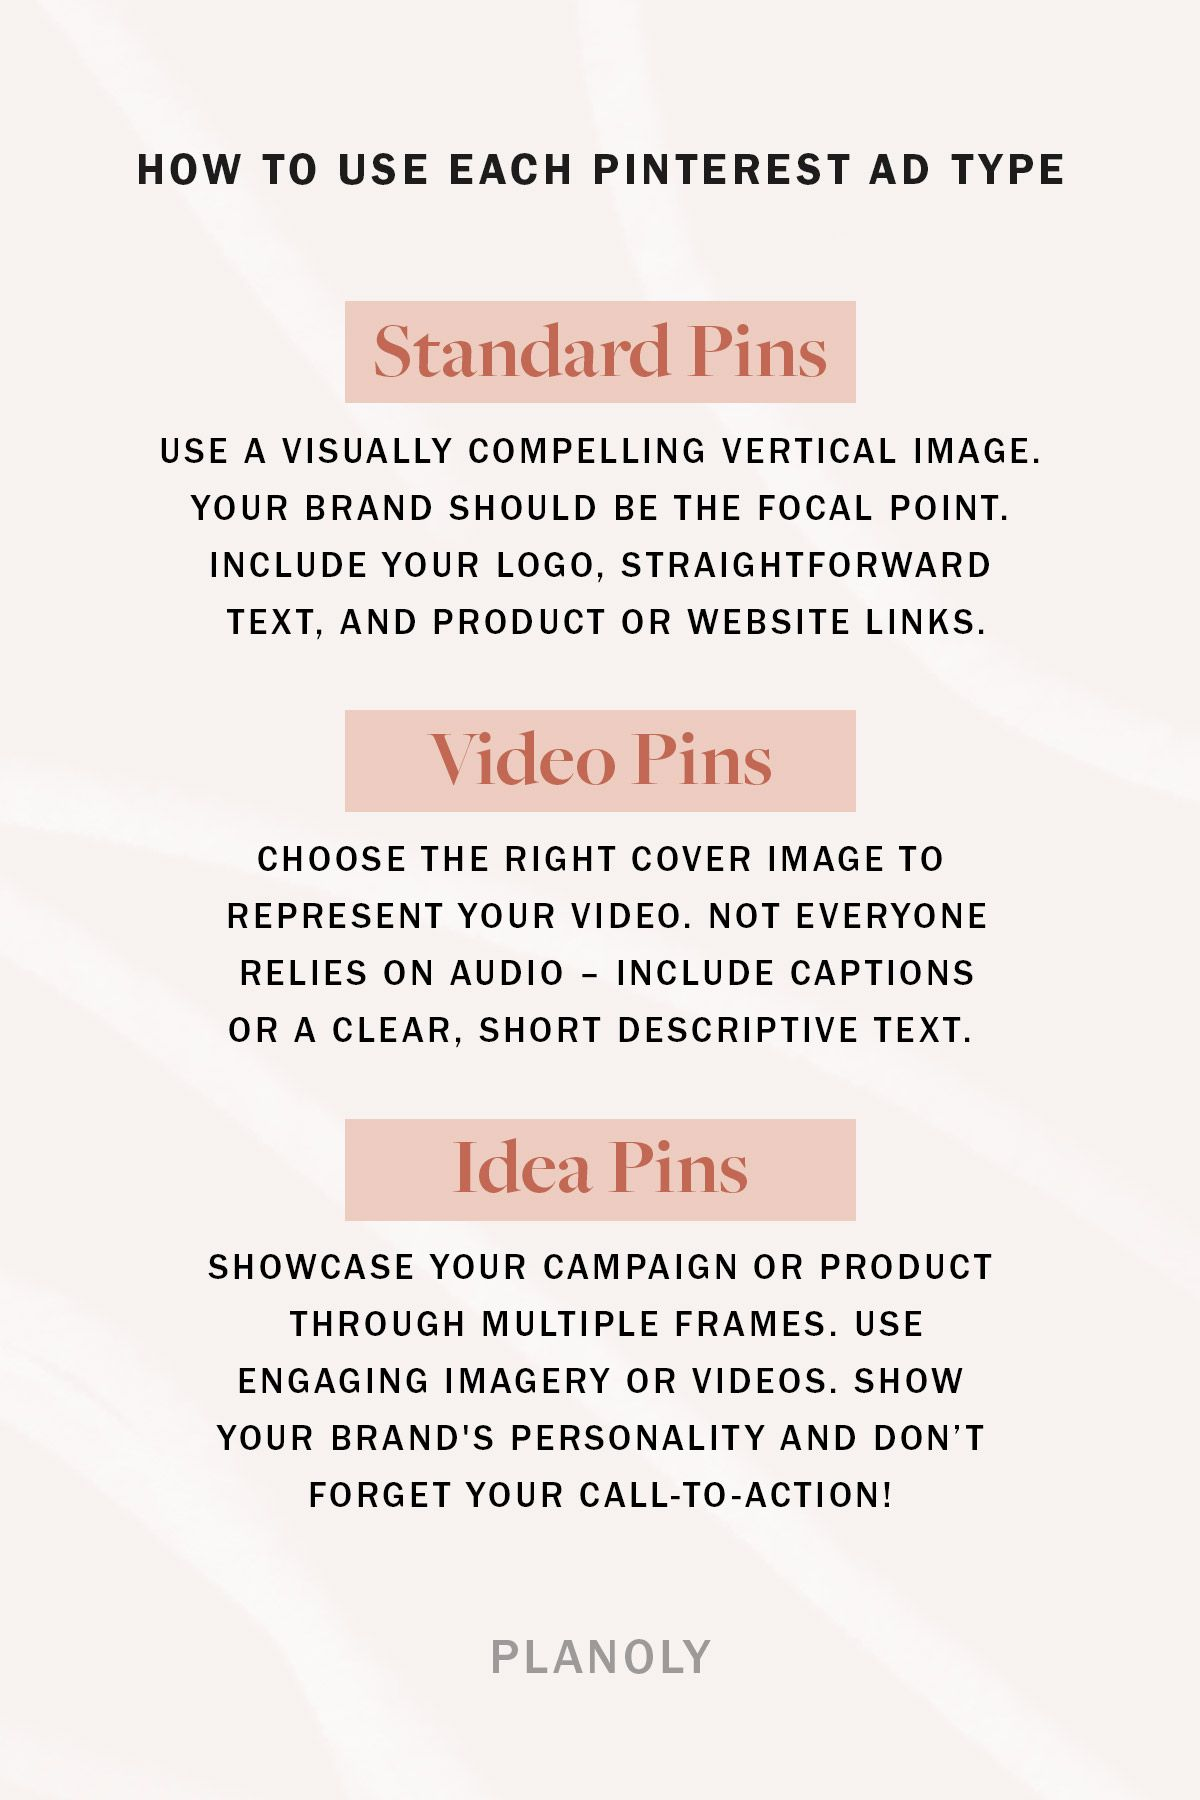 PLANOLY-Blog Post-Getting Started with Pinterest Ads-Image 1